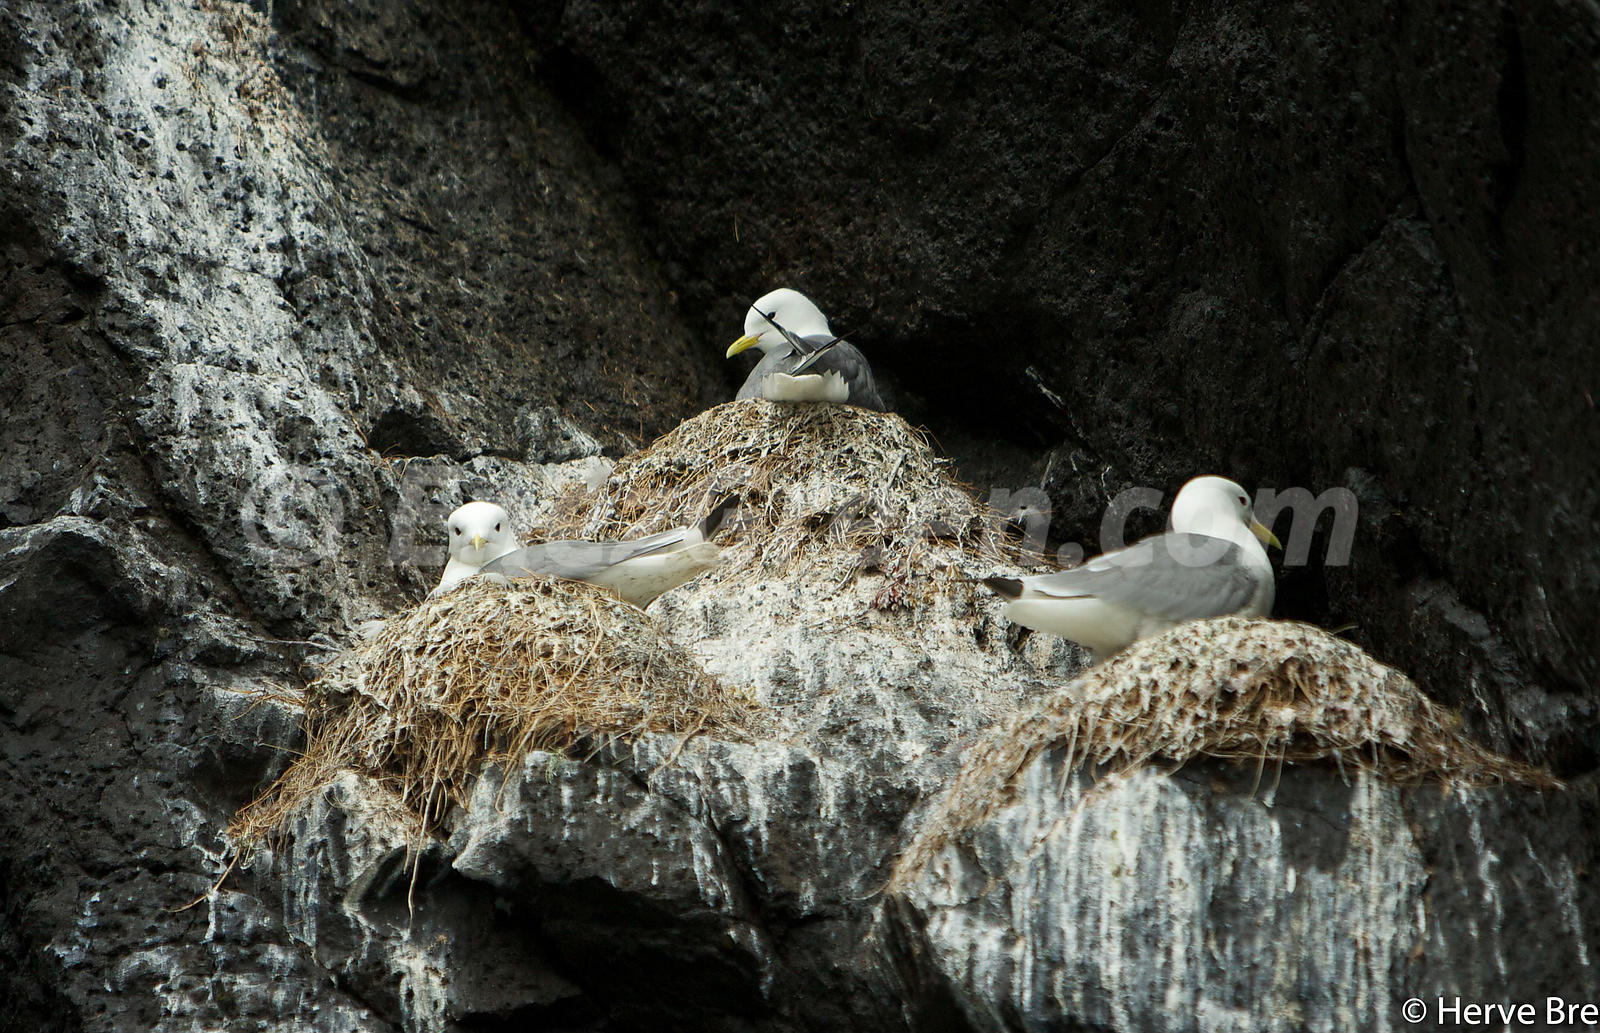 Kittiwakes nesting in Shiant islands